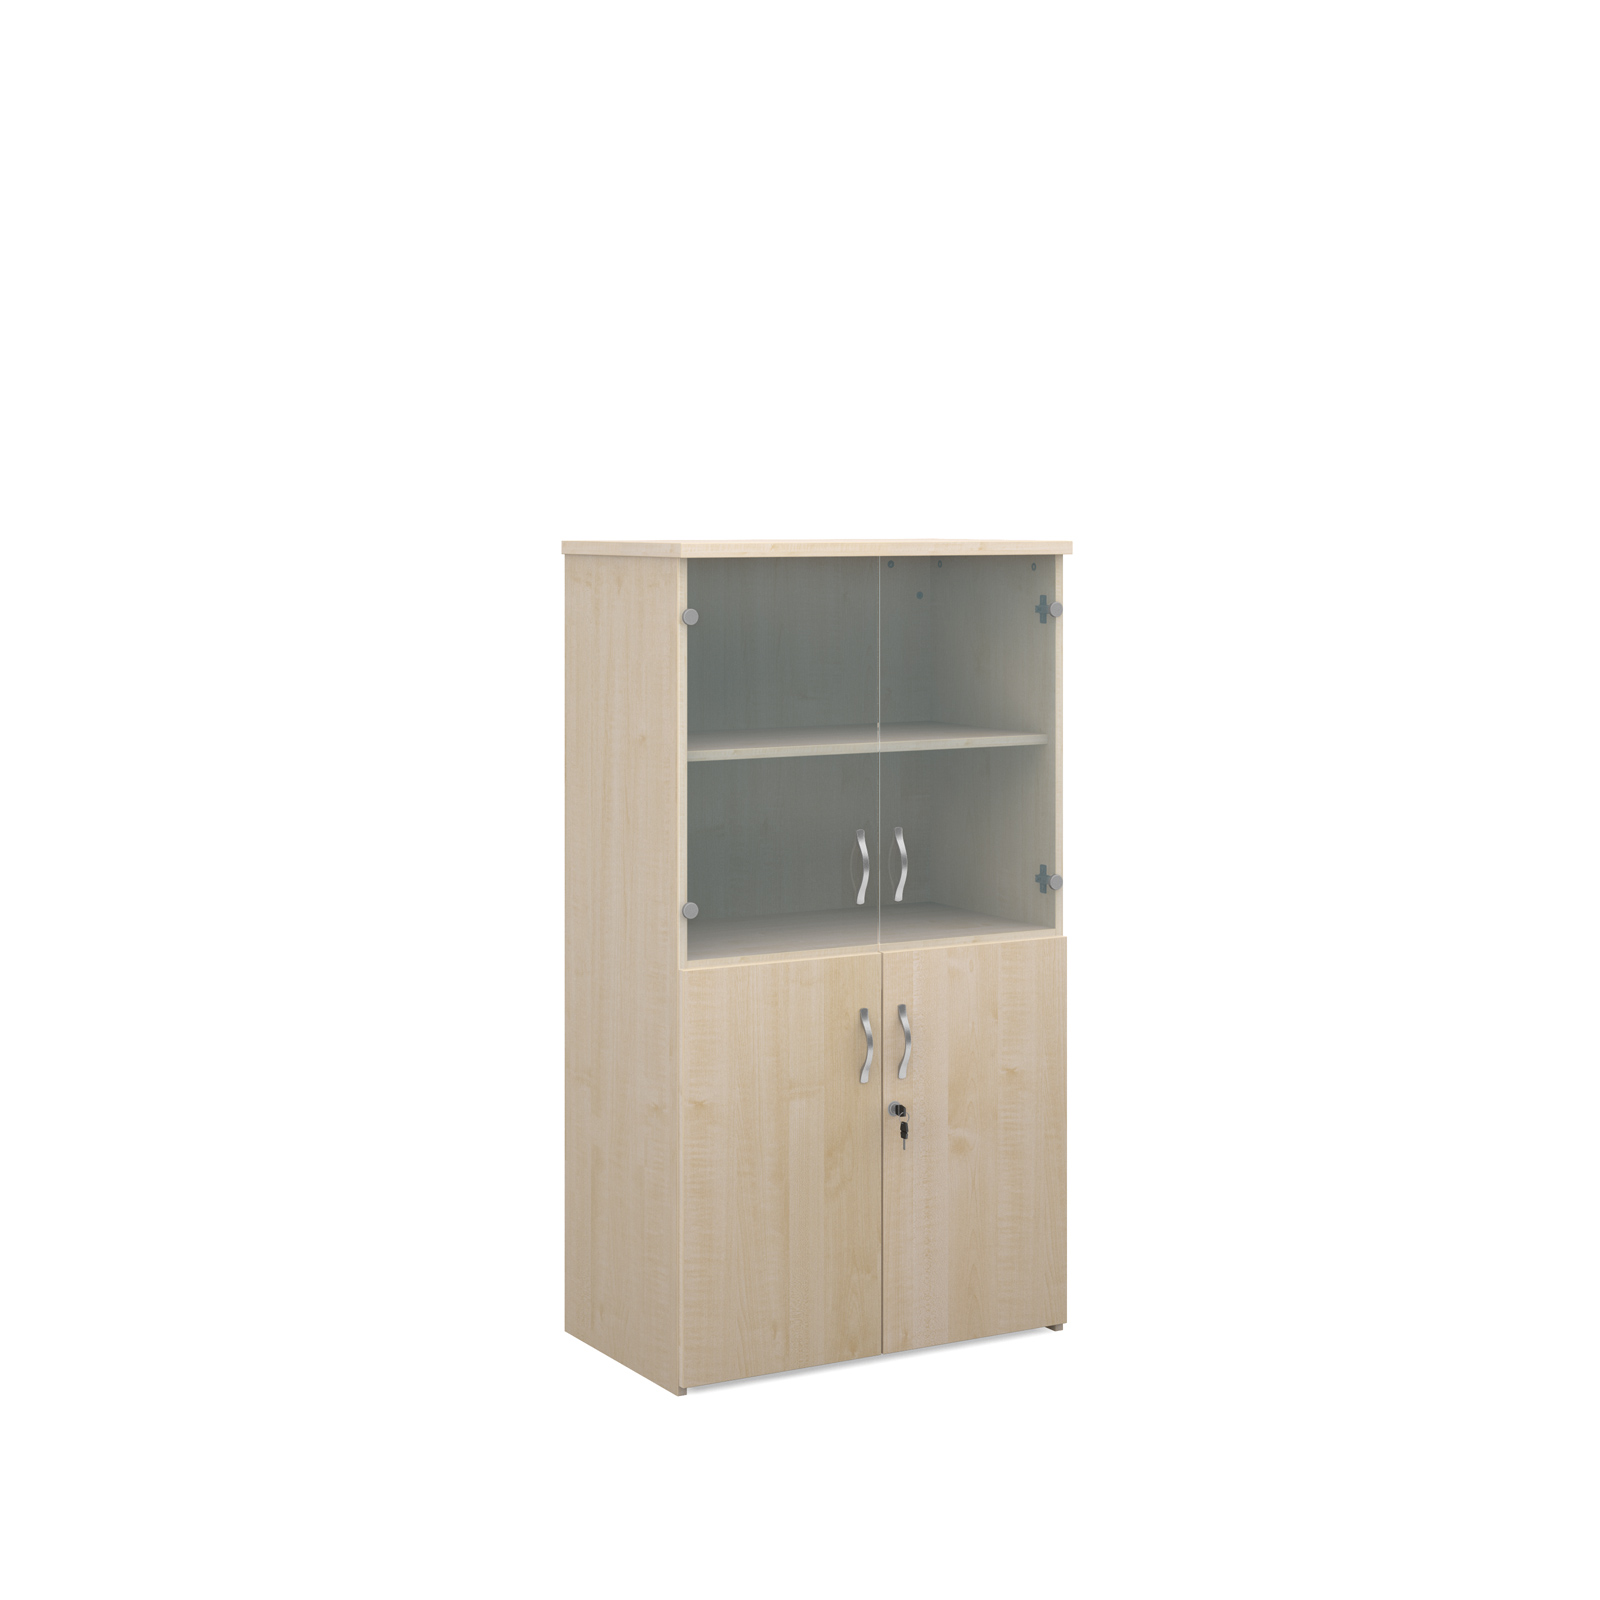 1440mm high combination unit with glass and wood doors in maple